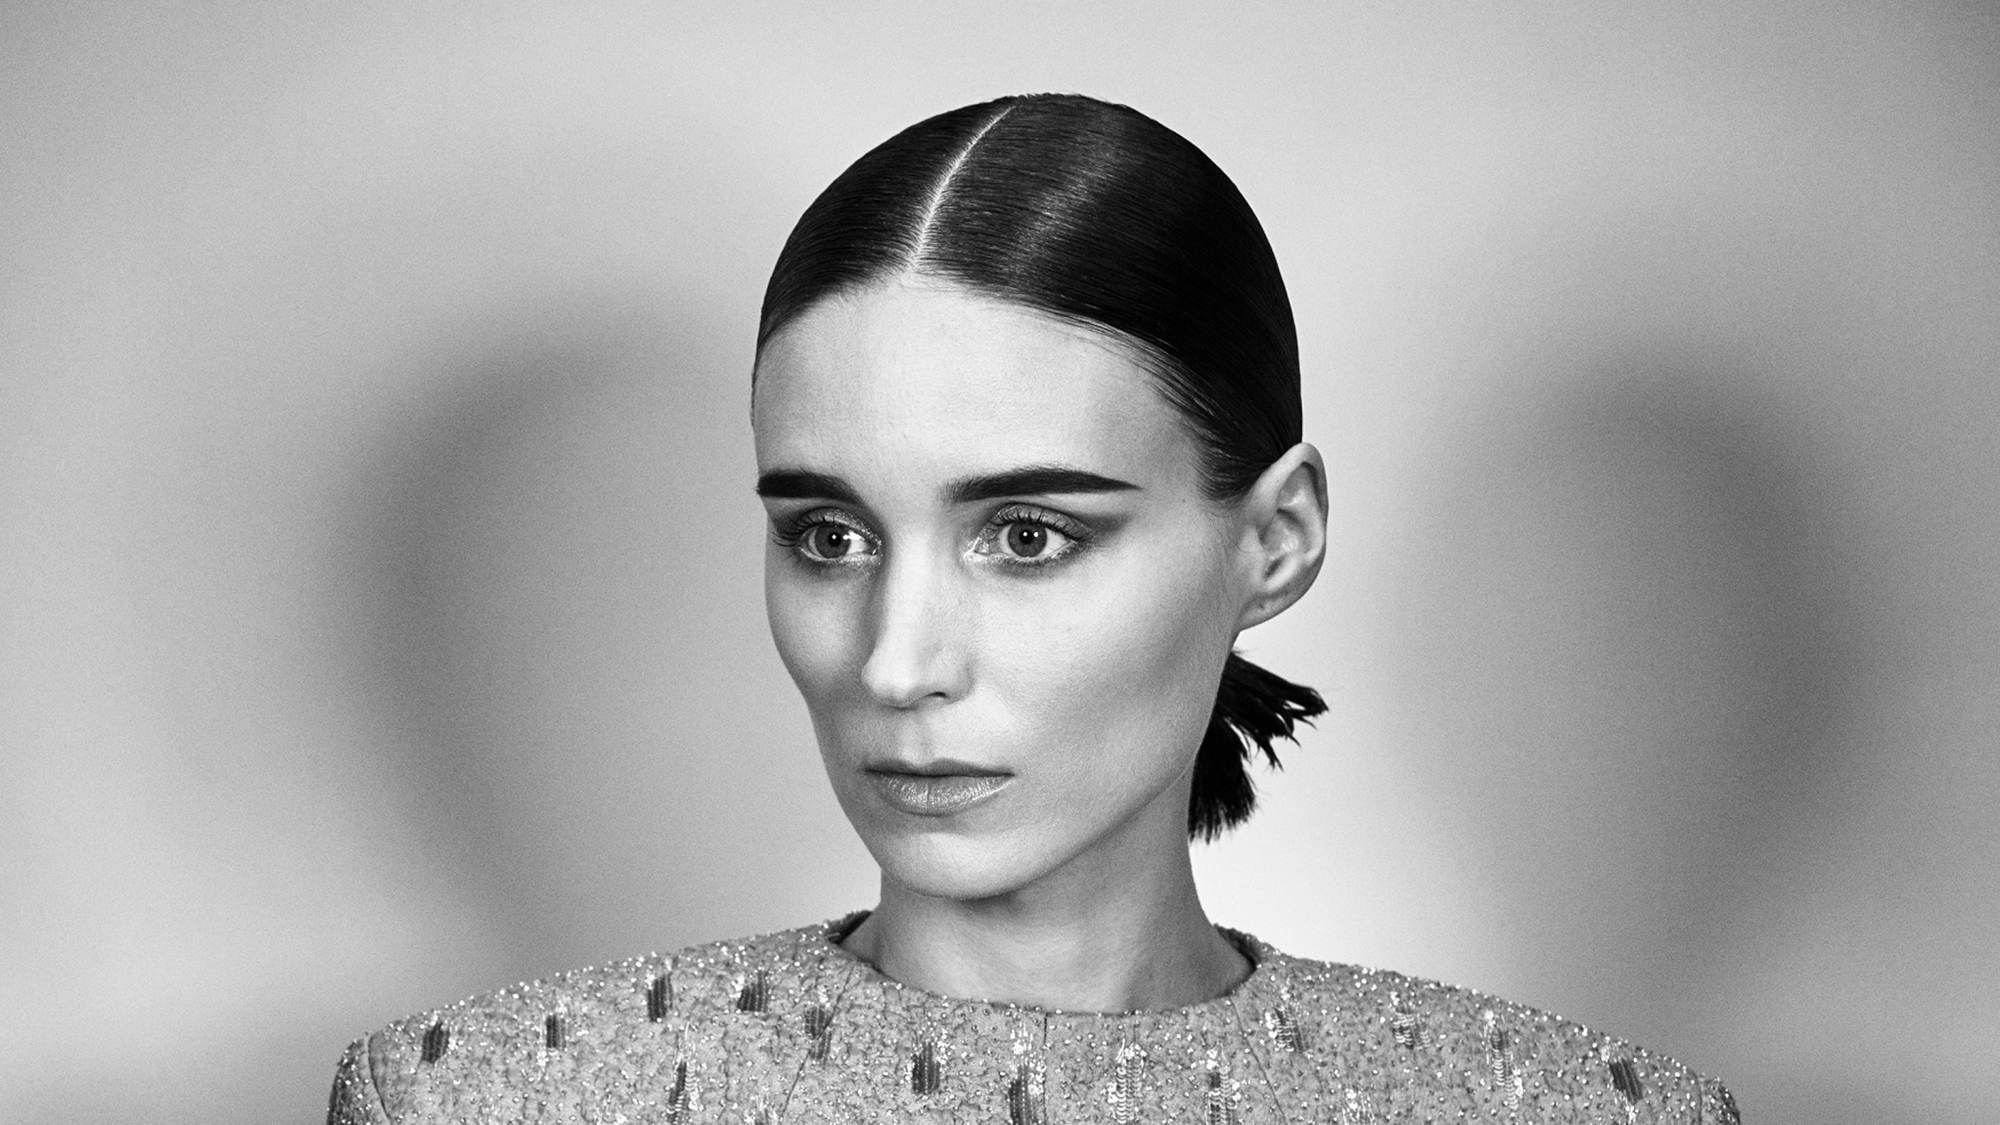 Rooney Mara was just announced as the new face of this cooler-than-cool brand